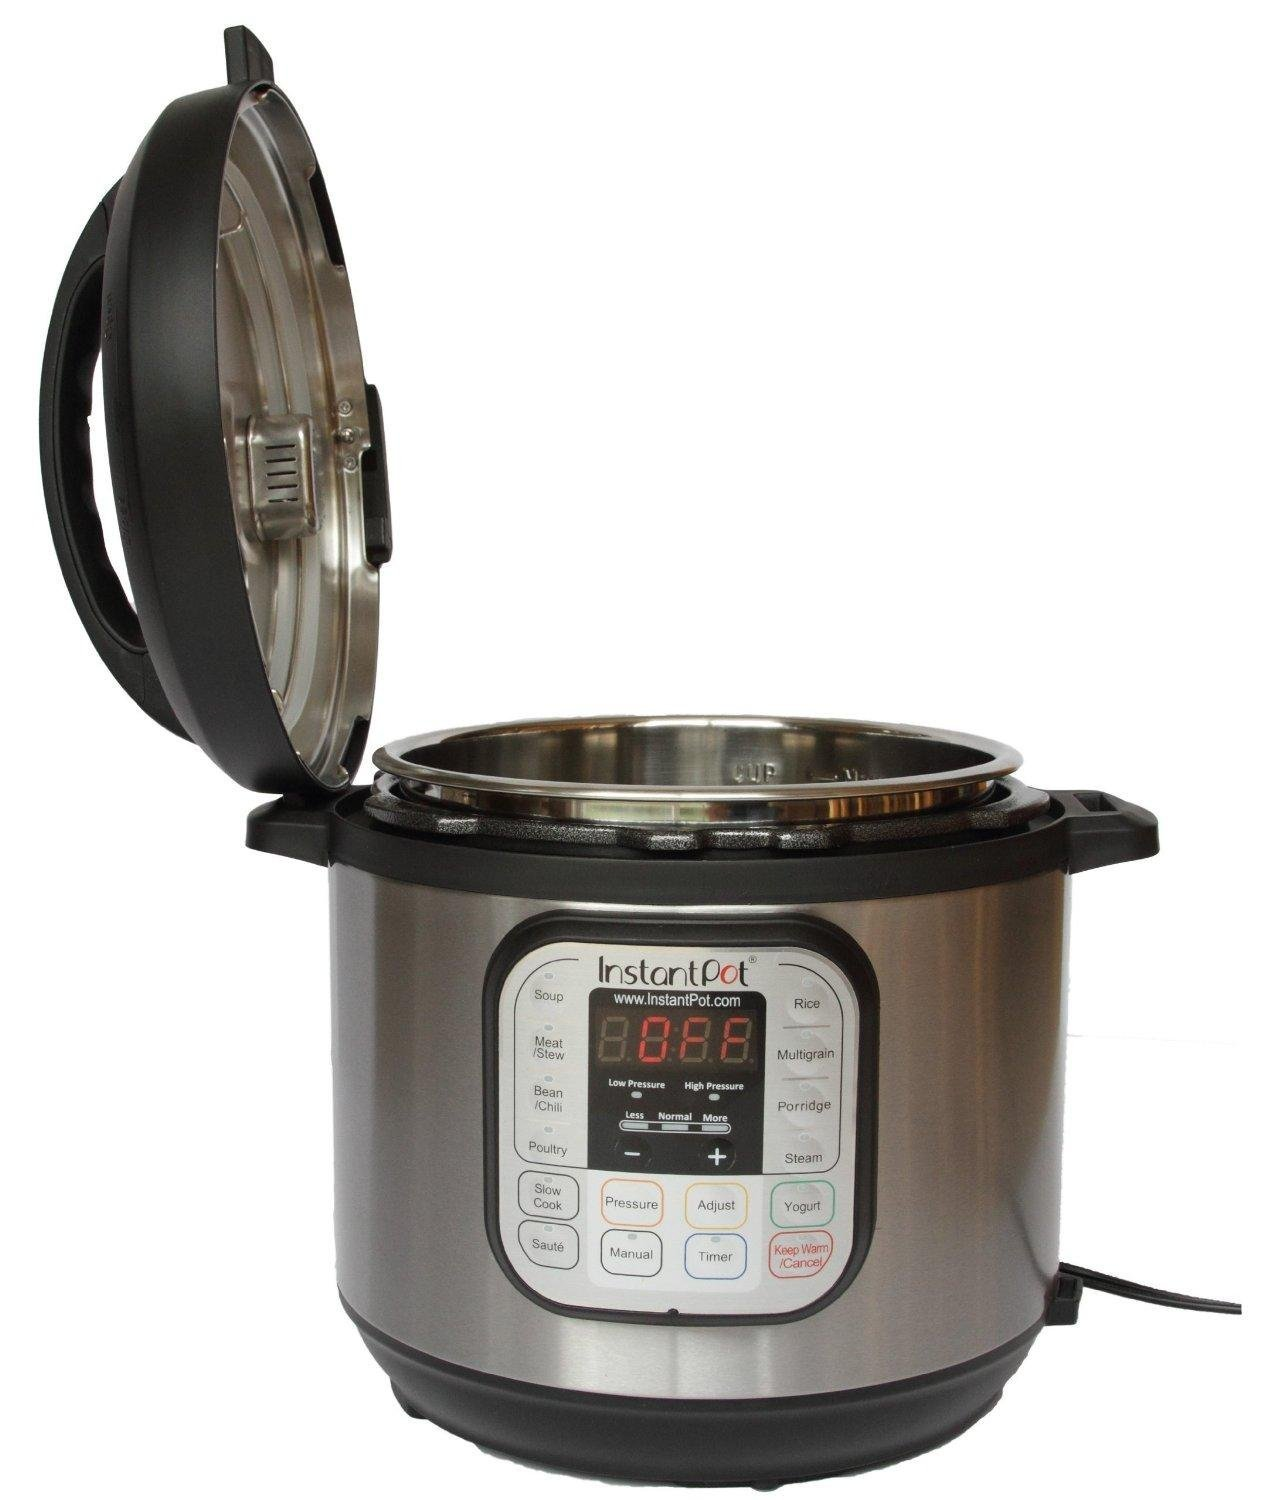 Details About 8 Qt Instant Pot IP DUO80 7 In 1 Programmable Electric Pressure Cooker